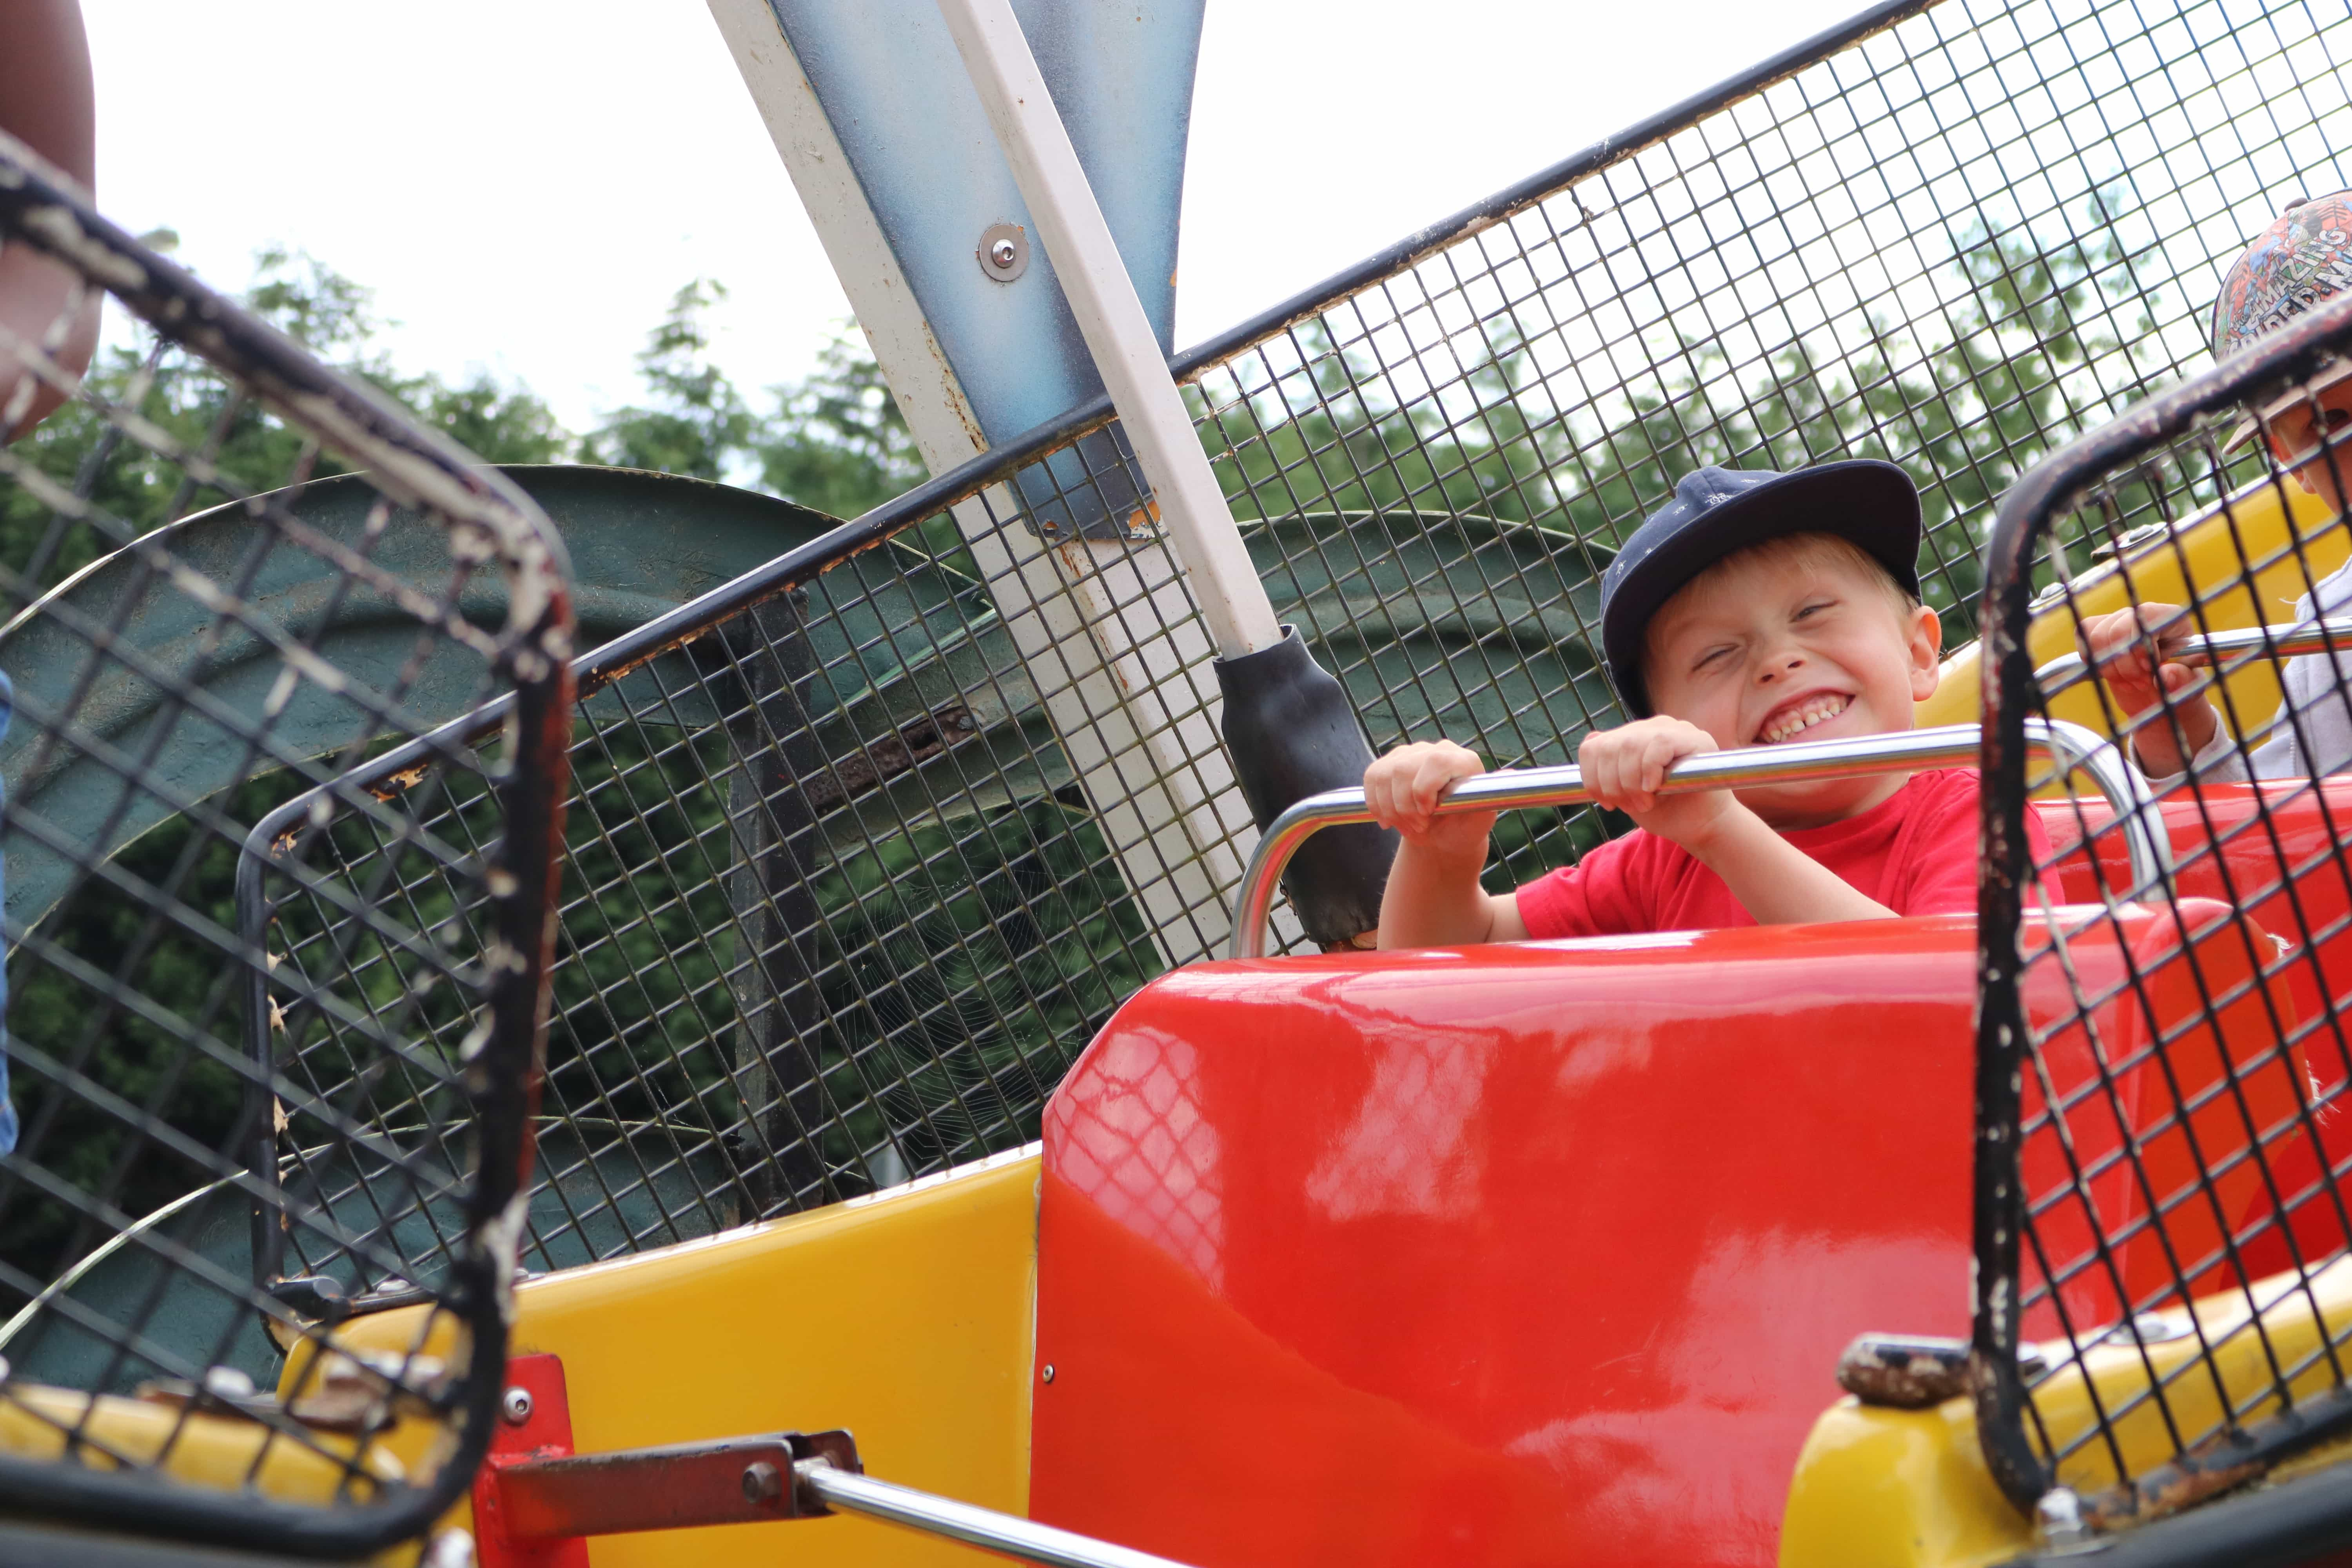 Robin Hoods Wheelgate Park - Nottinghamshire - Day Out Review